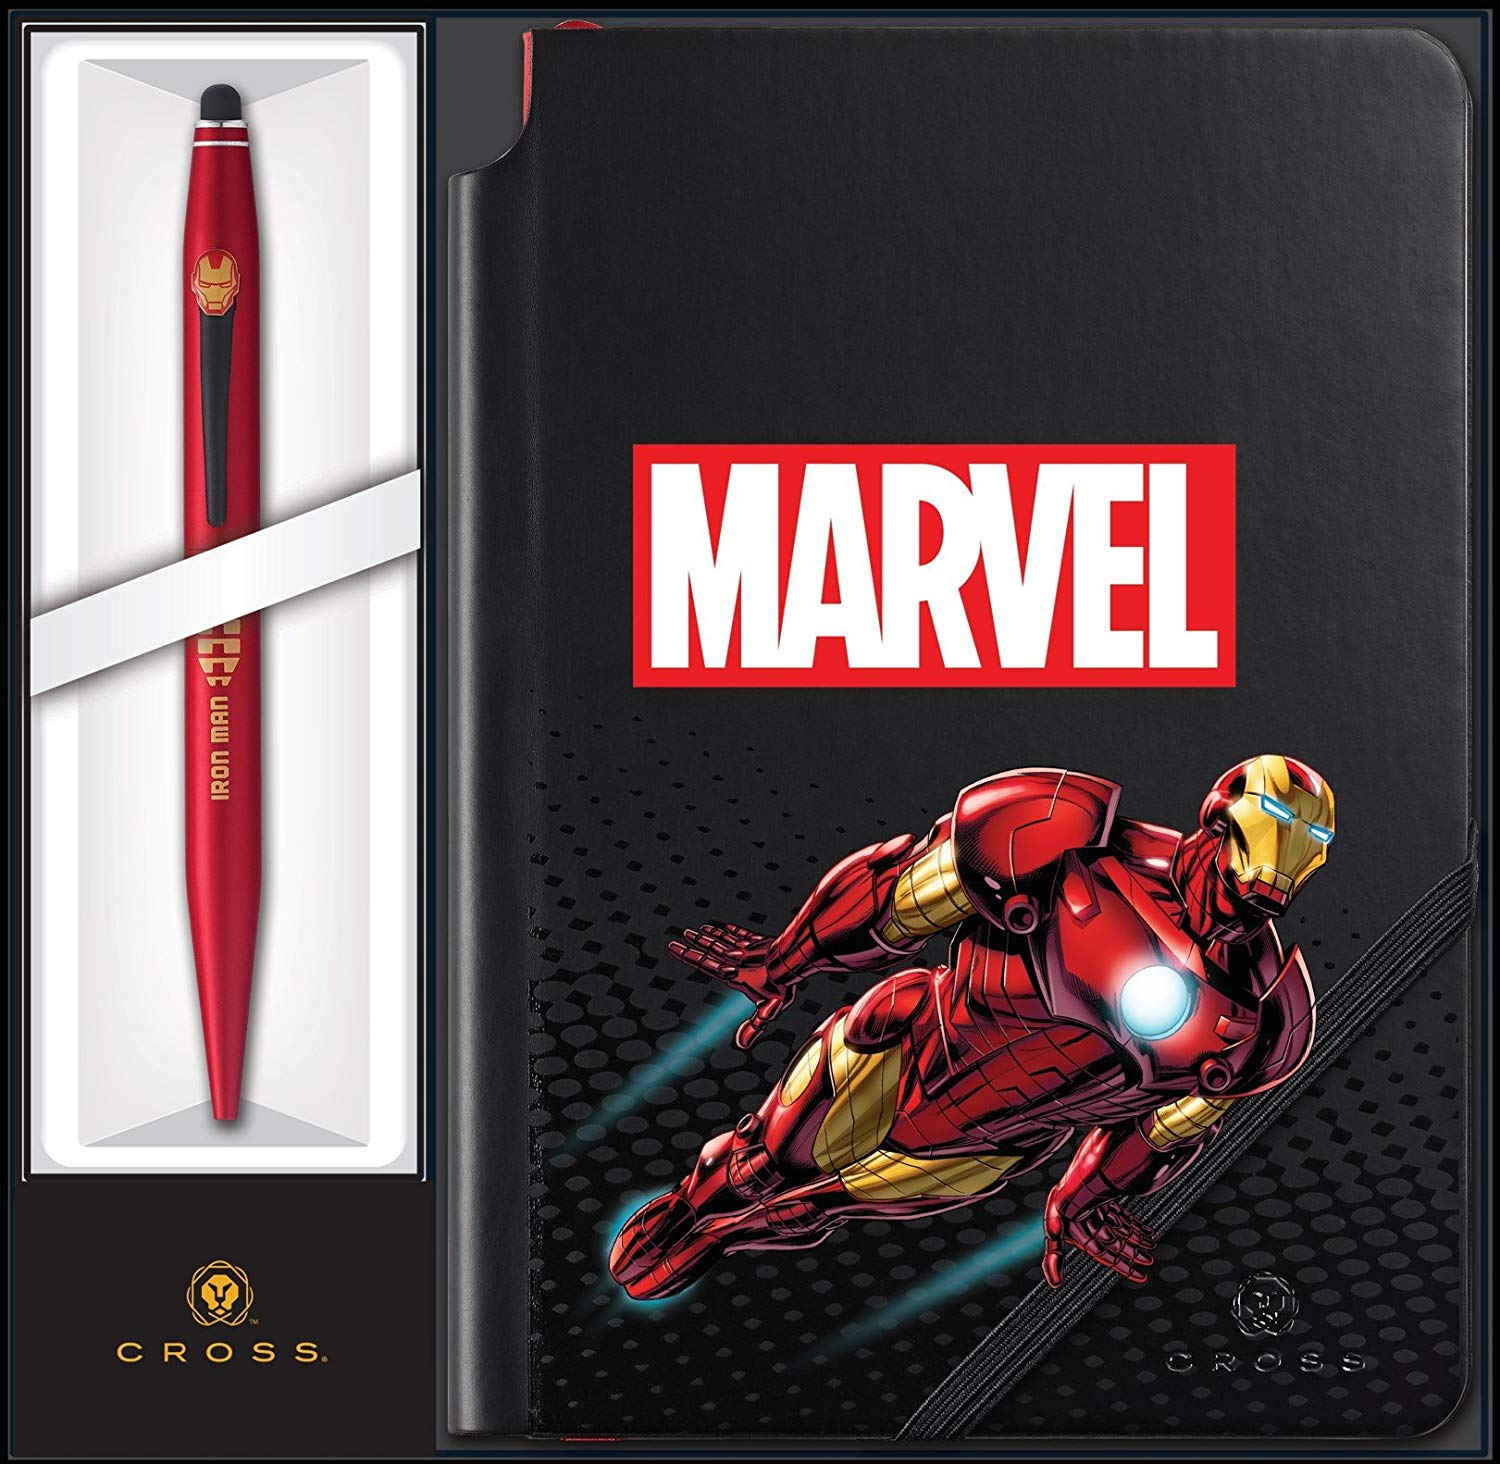 Cross Marvel Tech2 and Journal Gift Set featuring Iron Man